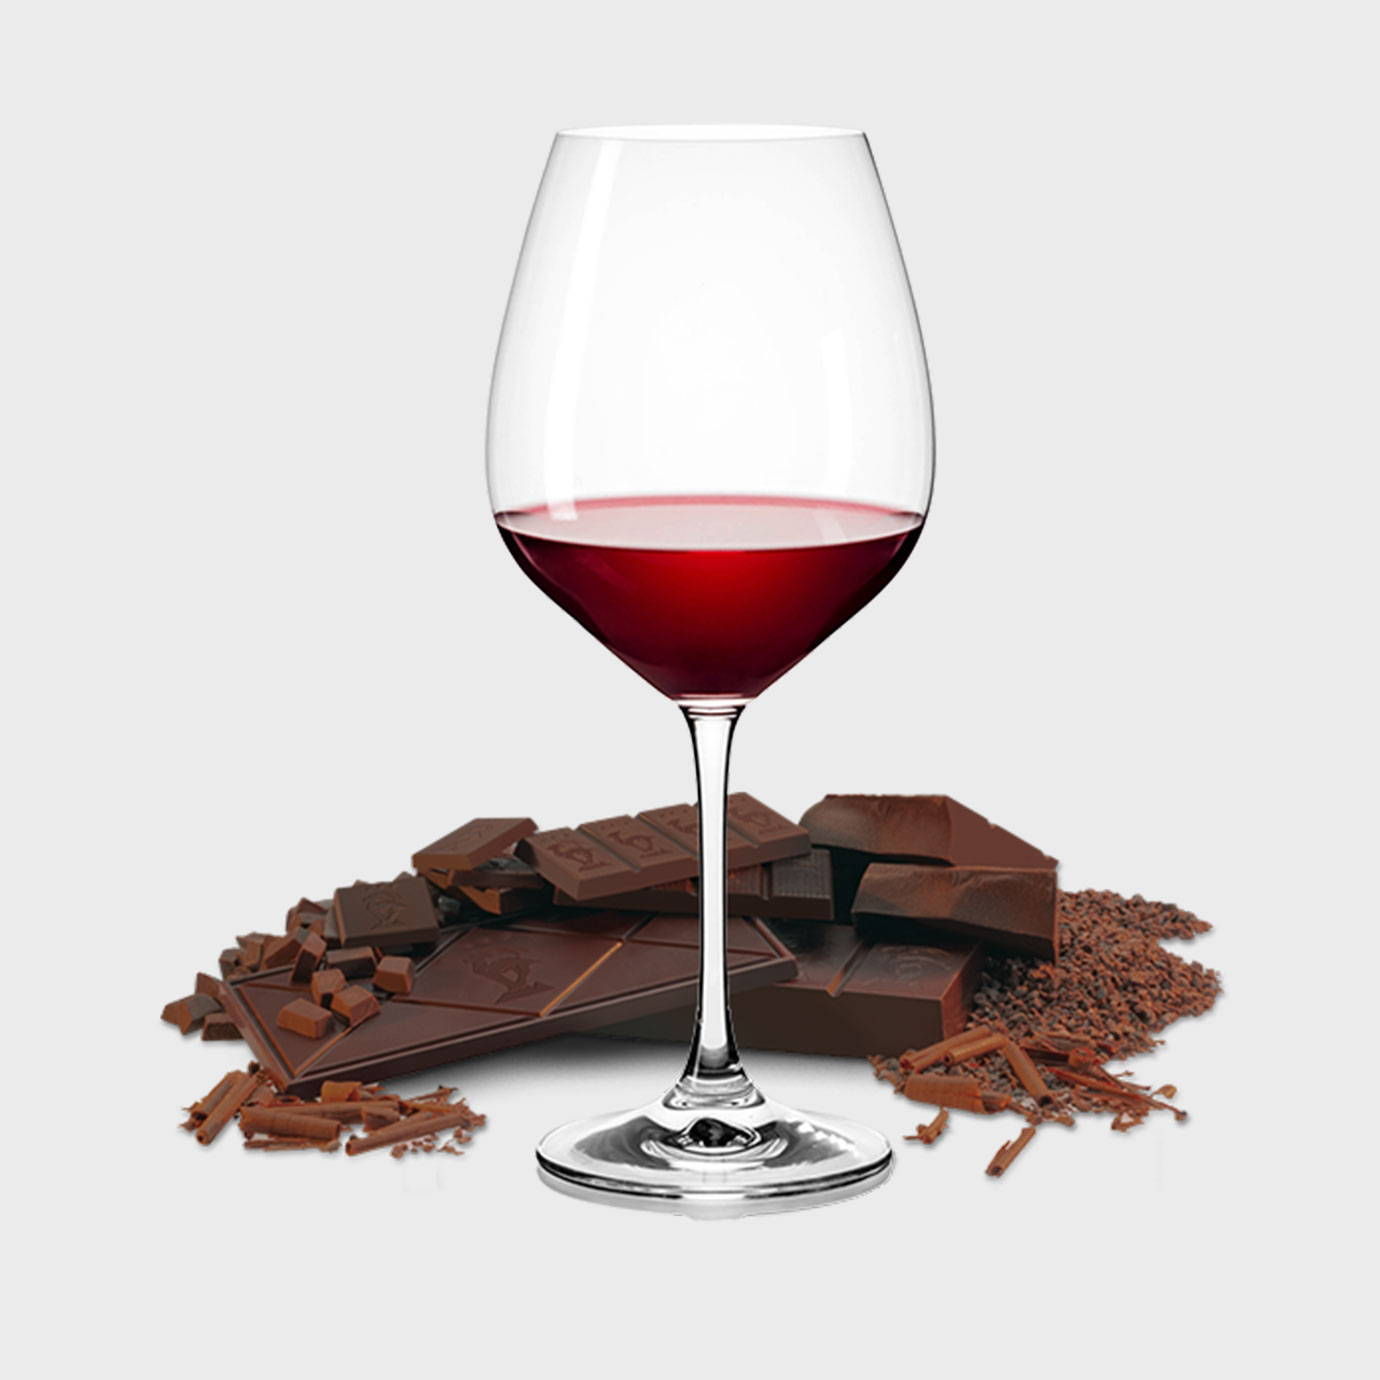 Wine and Chocolate image